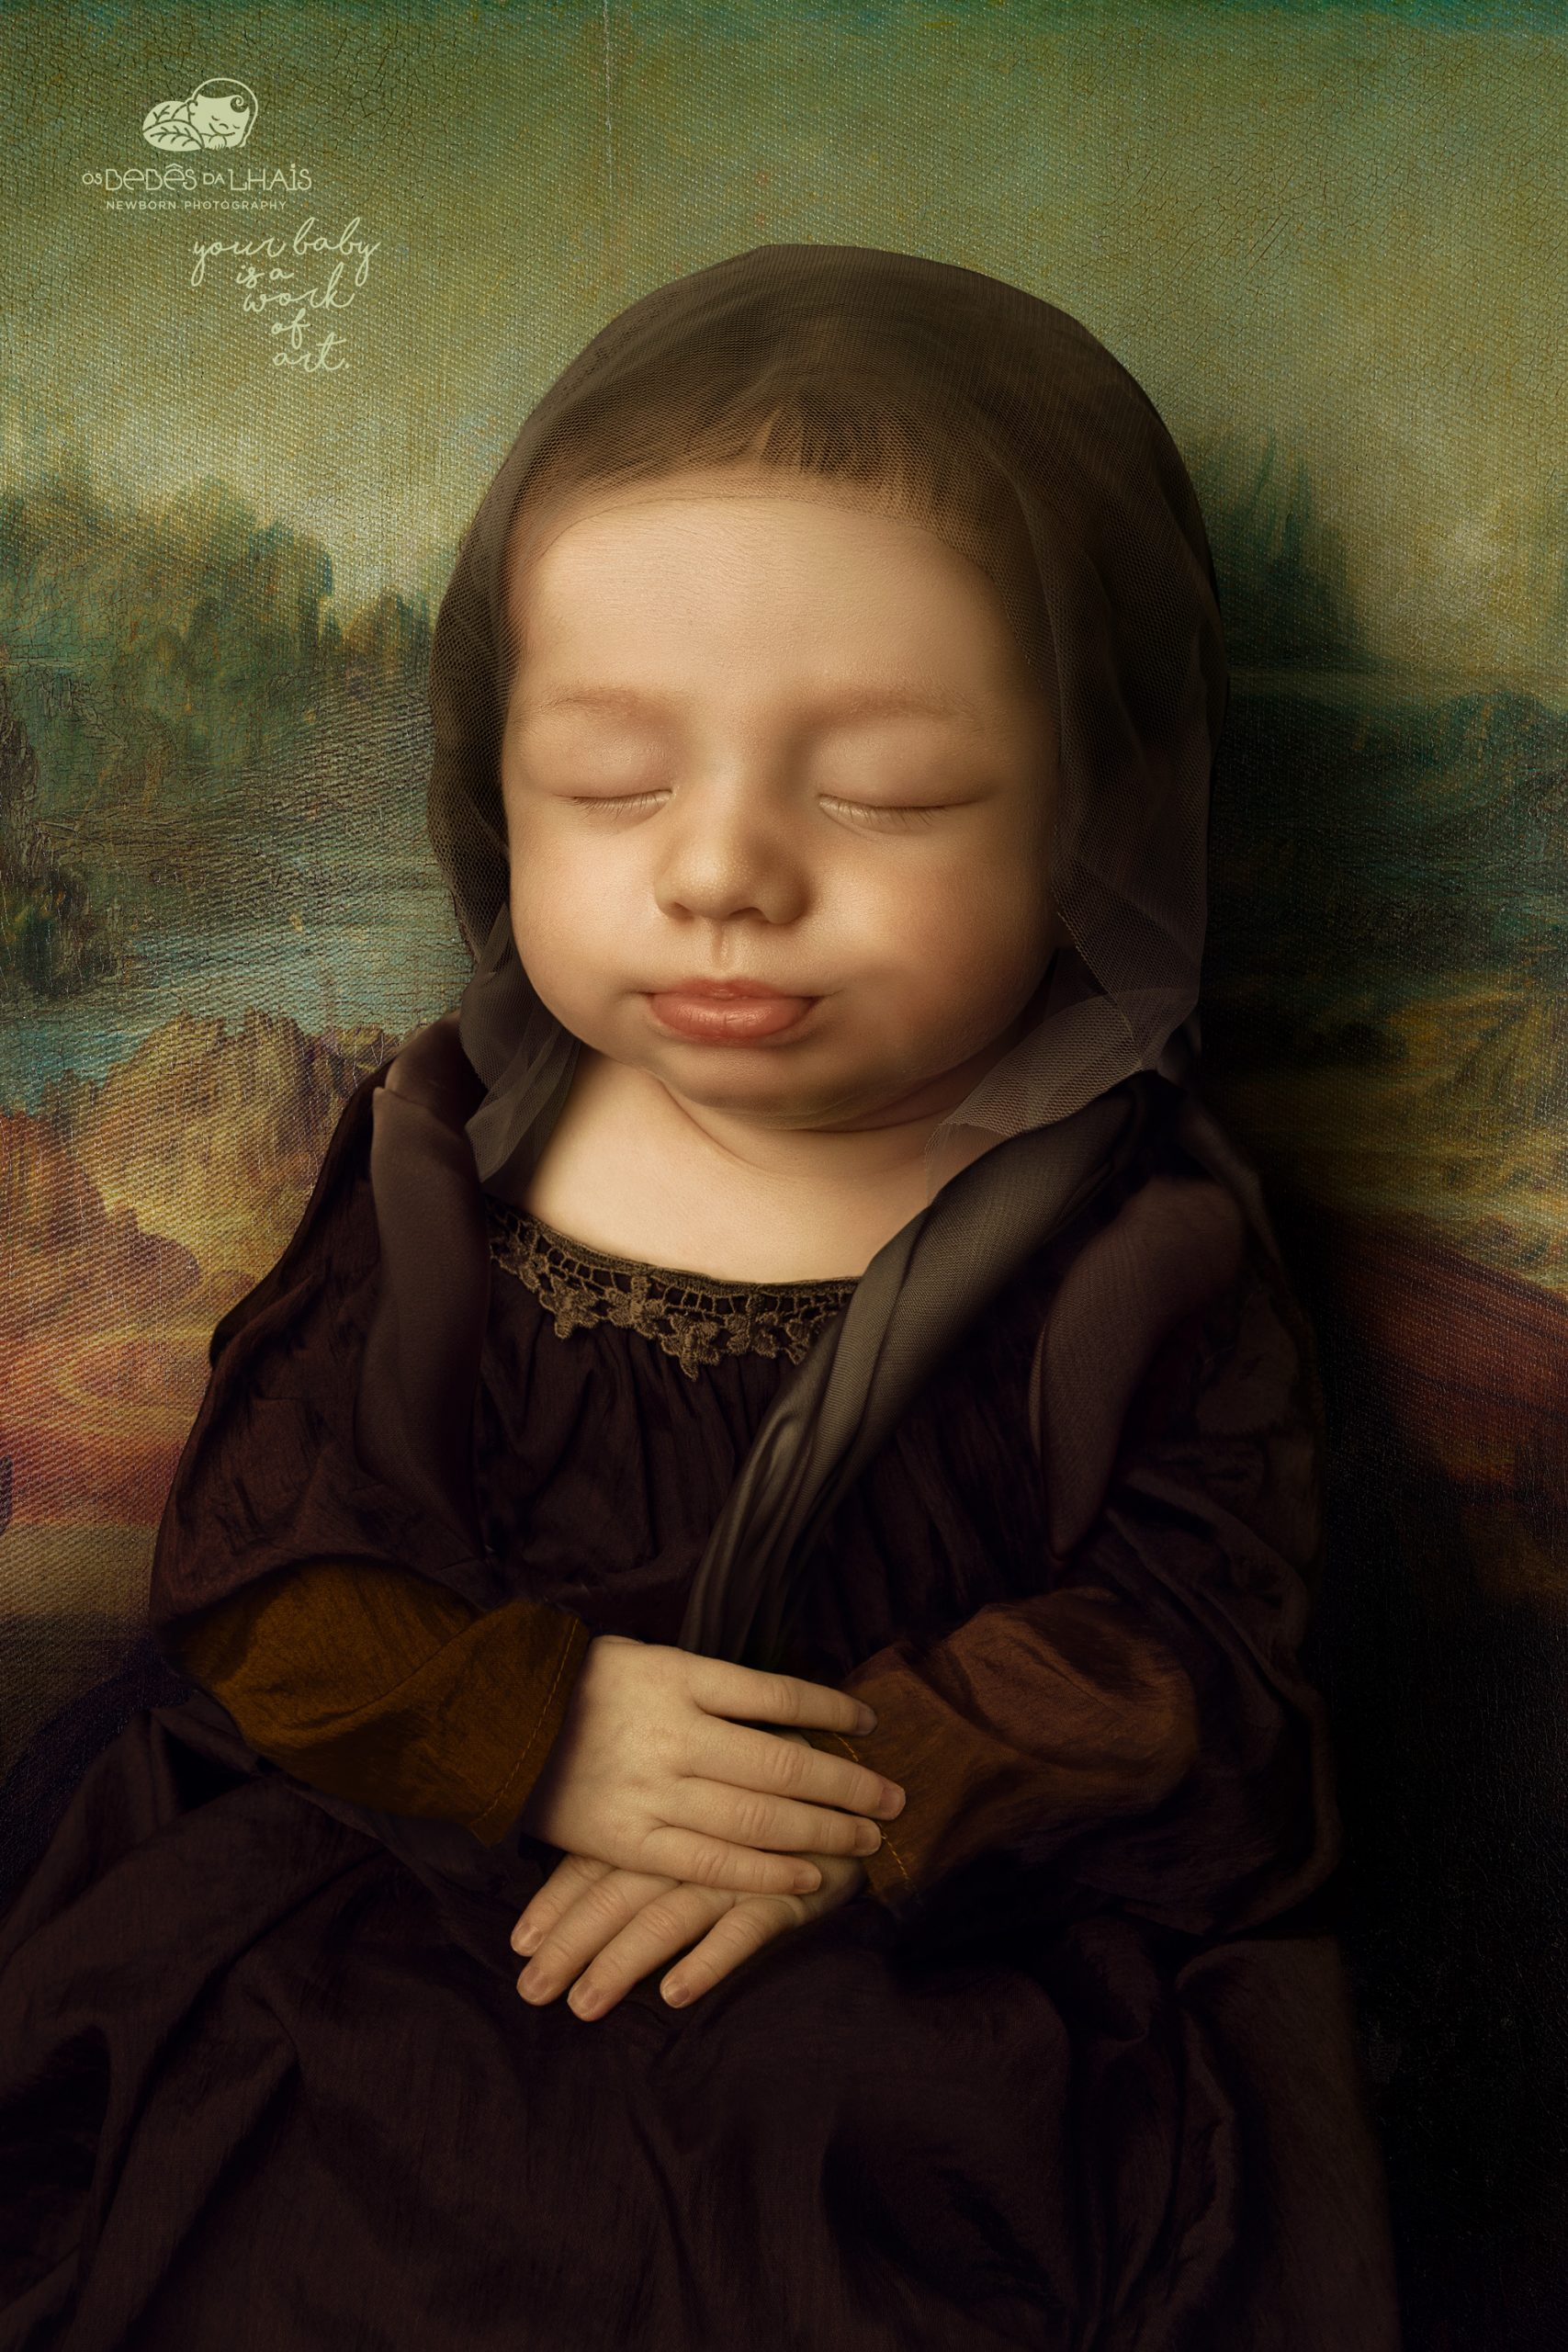 Your baby is a work of art | MUSE Creative Awards